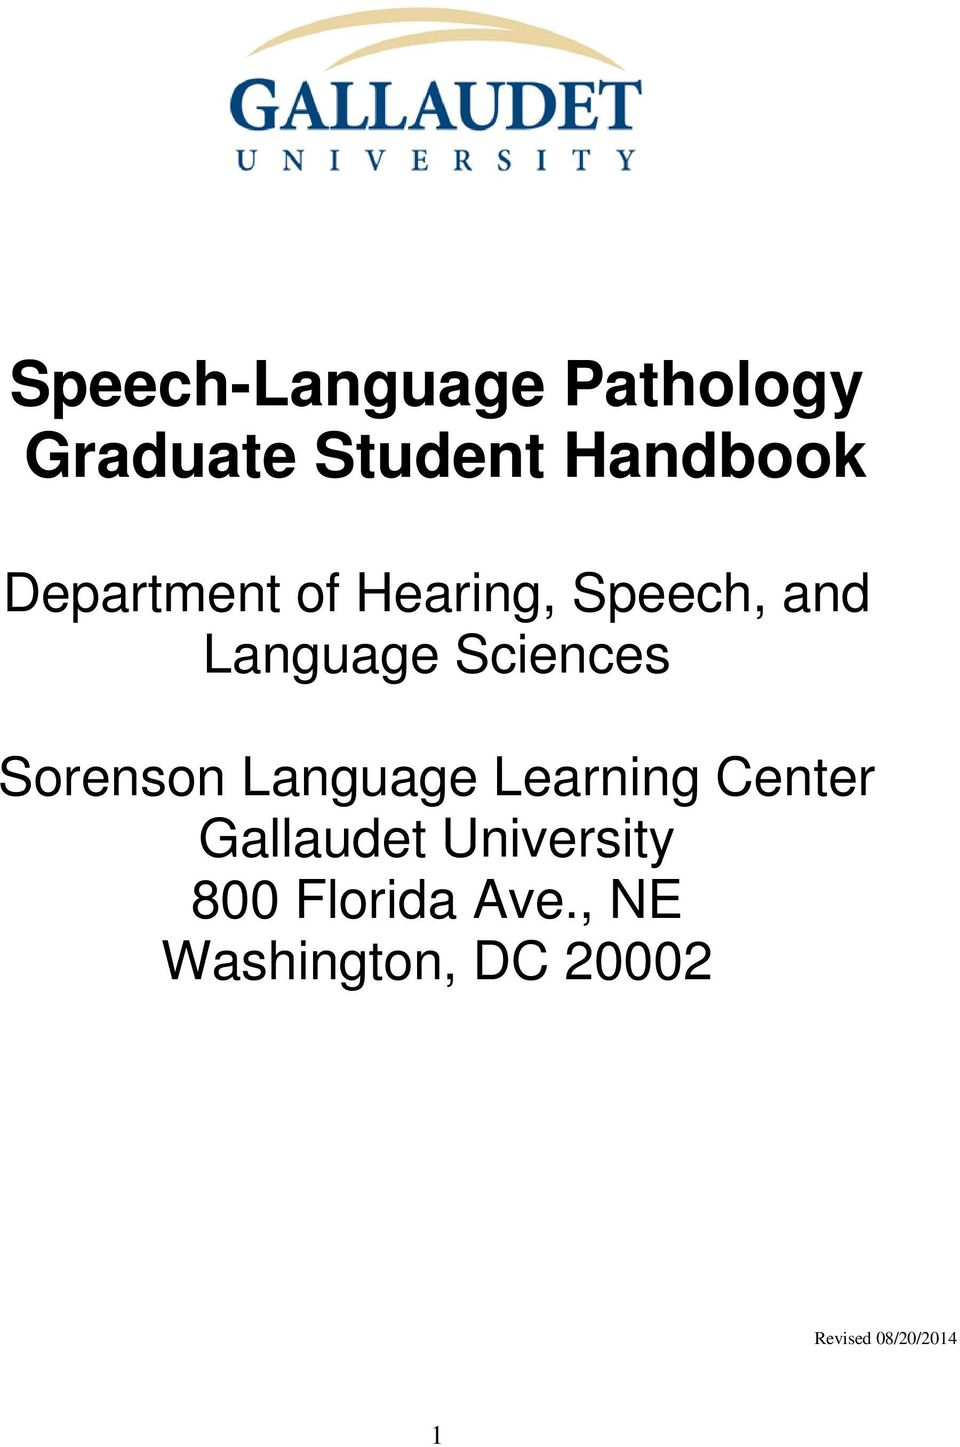 Sorenson Language Learning Center Gallaudet University